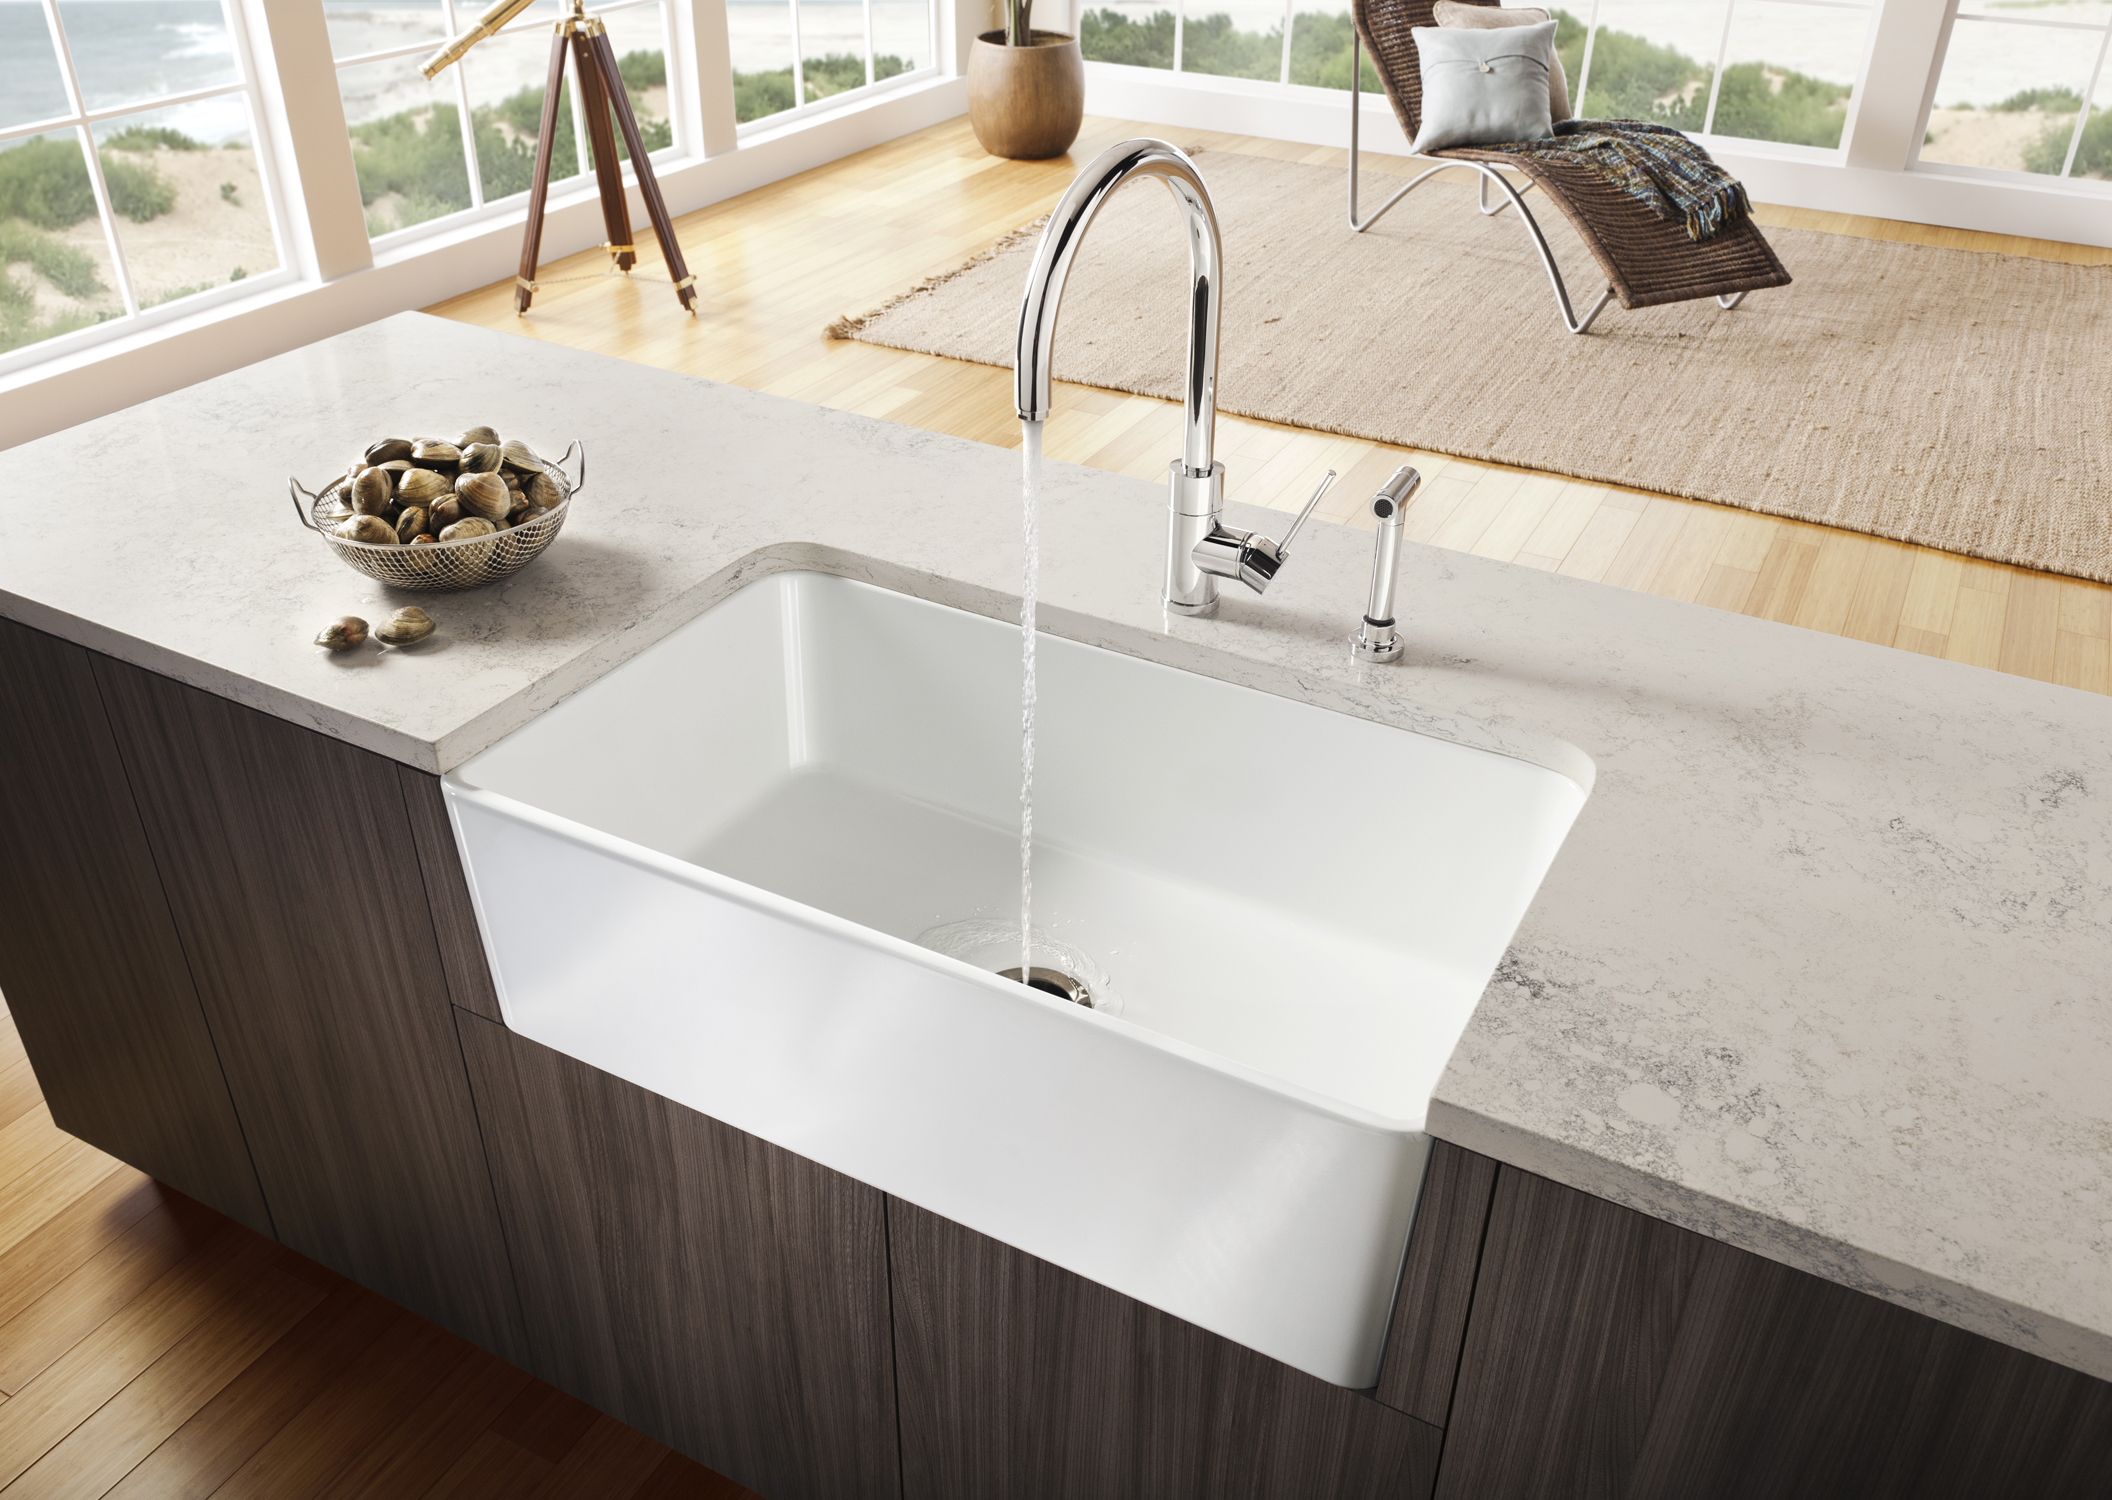 Exceptionnel Blanco Introduces The Cerana A Front Kitchen Sink Reimagining